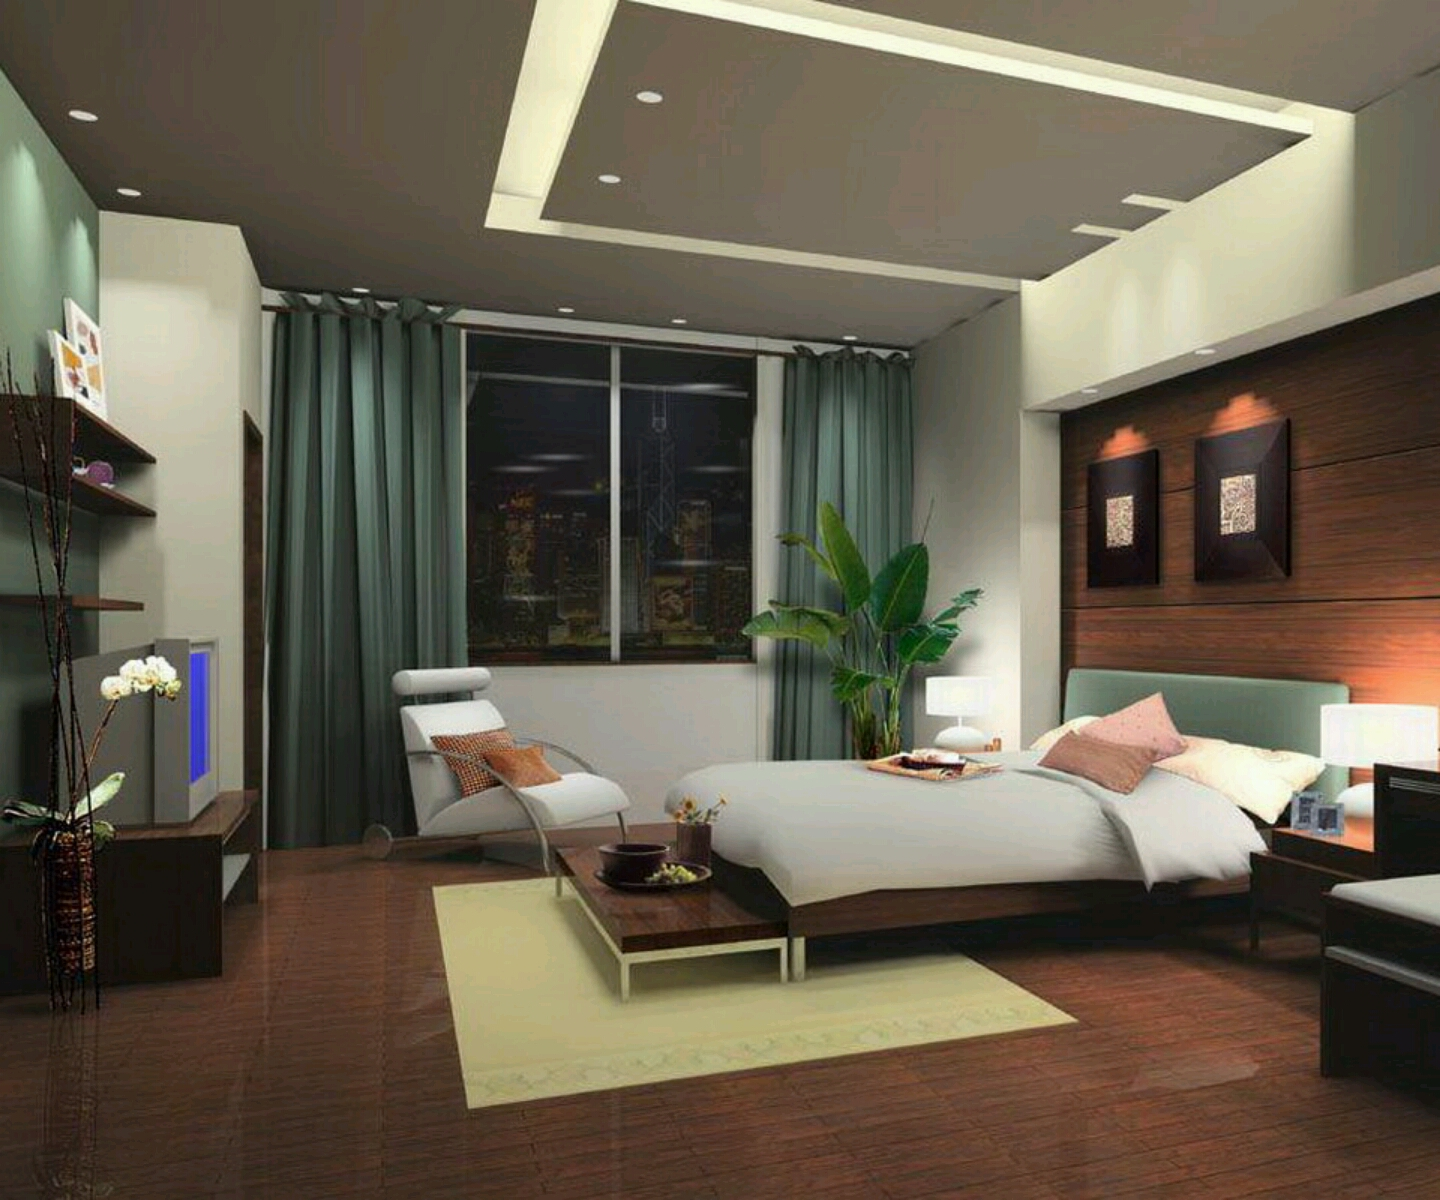 modern bedroom design ideas New home designs latest.: Modern bedrooms designs best ideas.